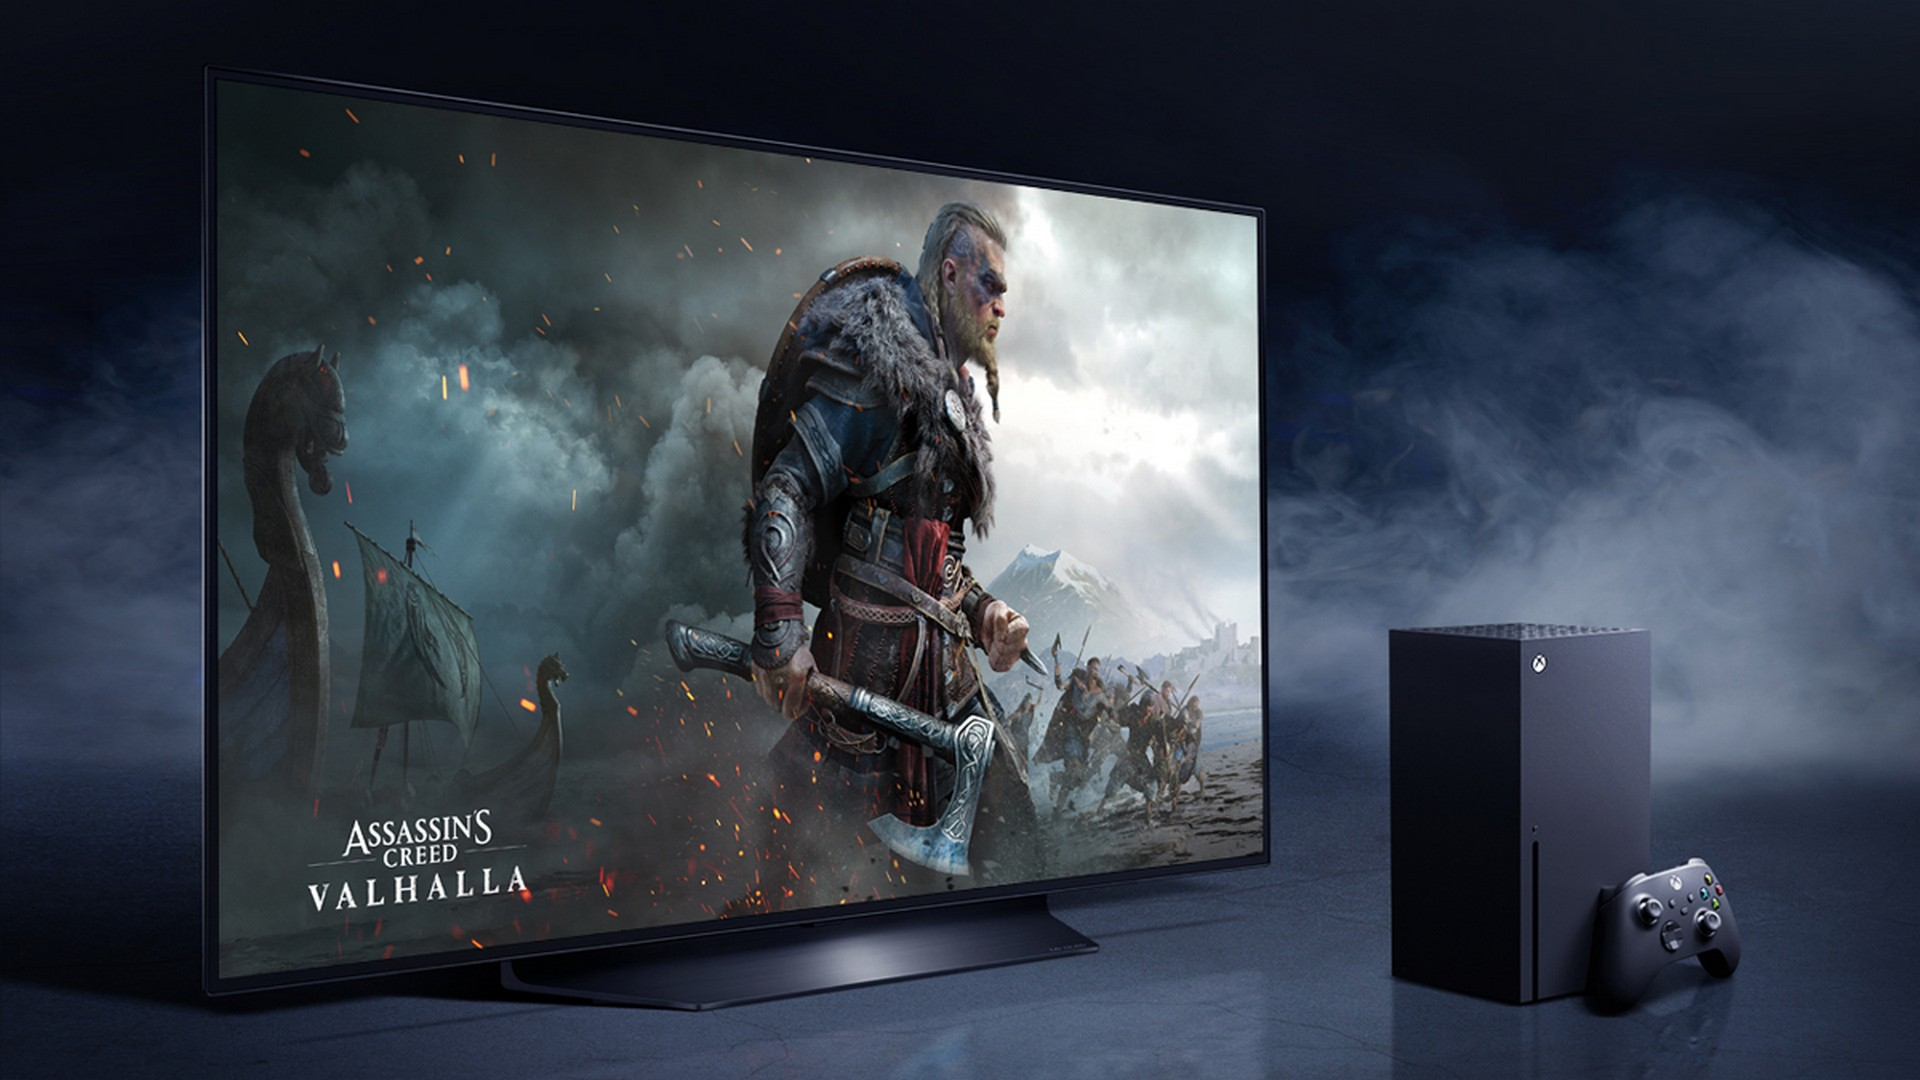 LG OLED TV & Xbox Series X Unleash Next-Gen Console Gaming Power